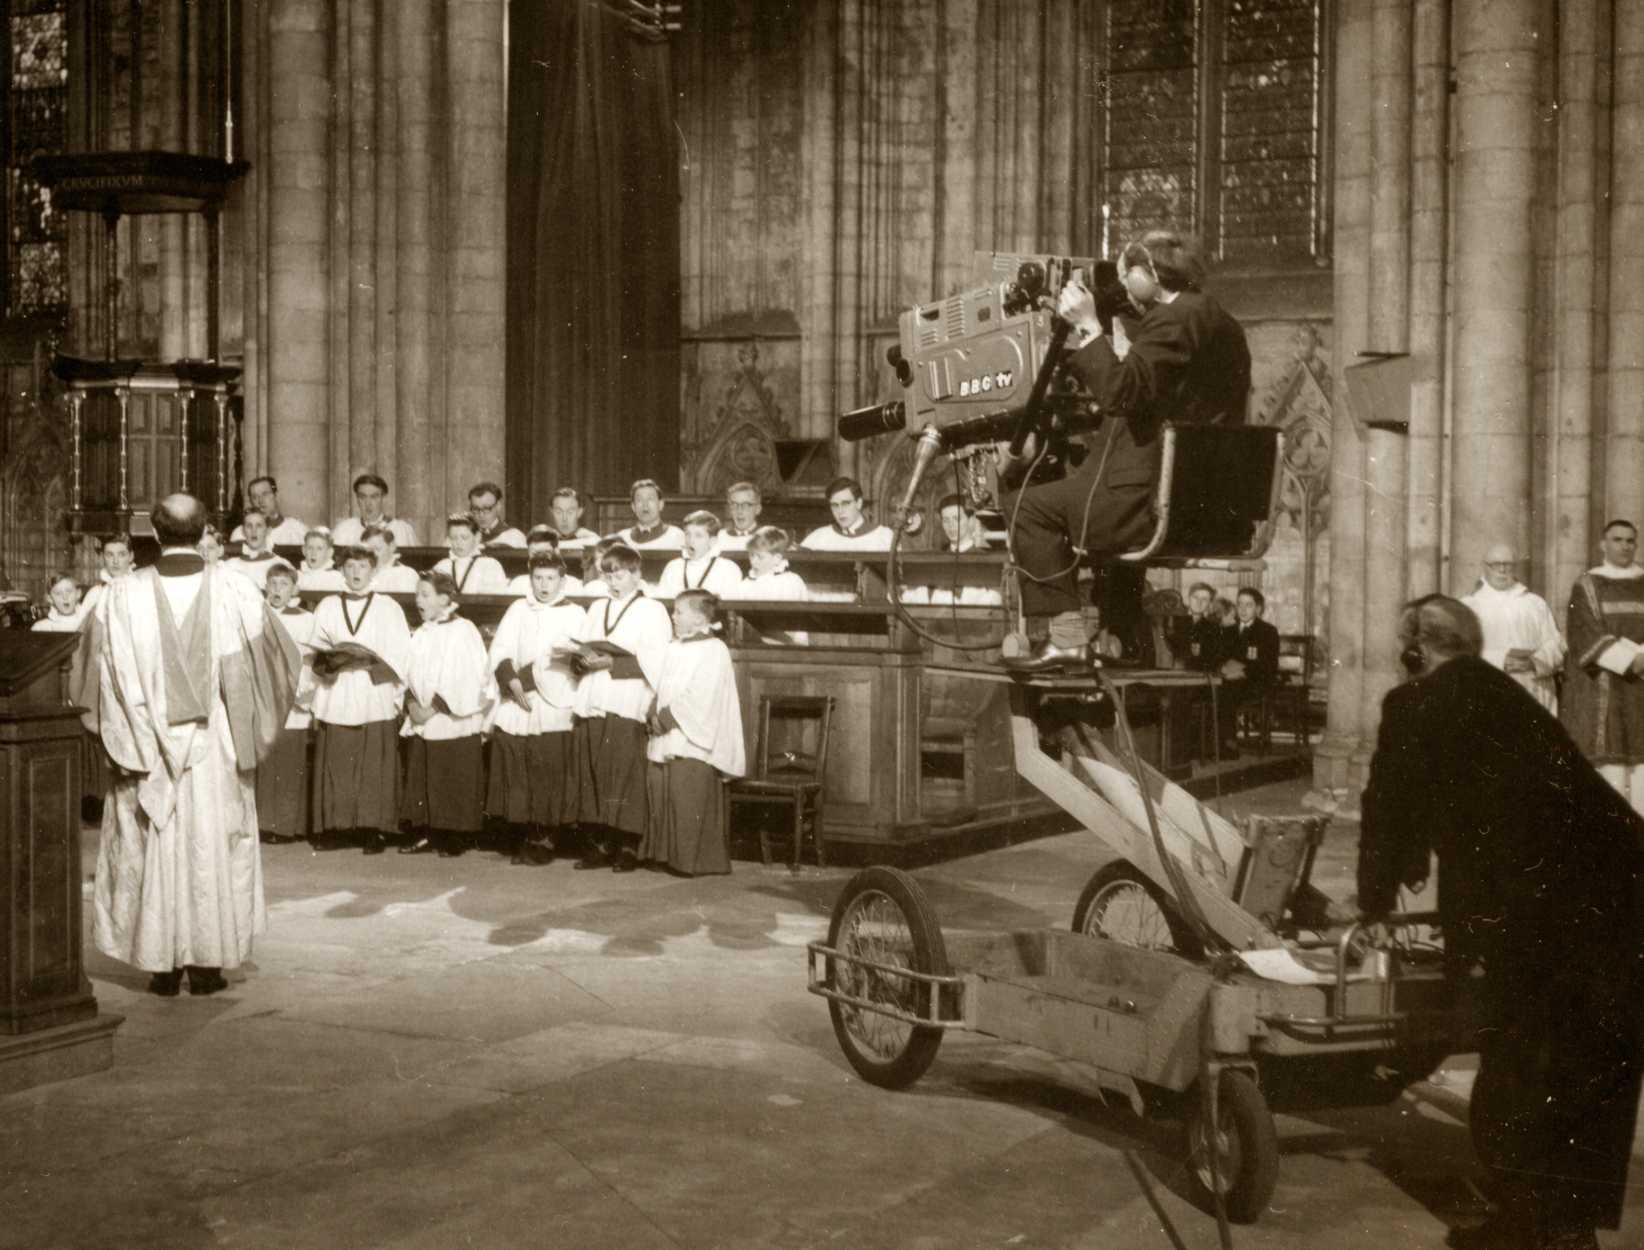 York Minster, 1965